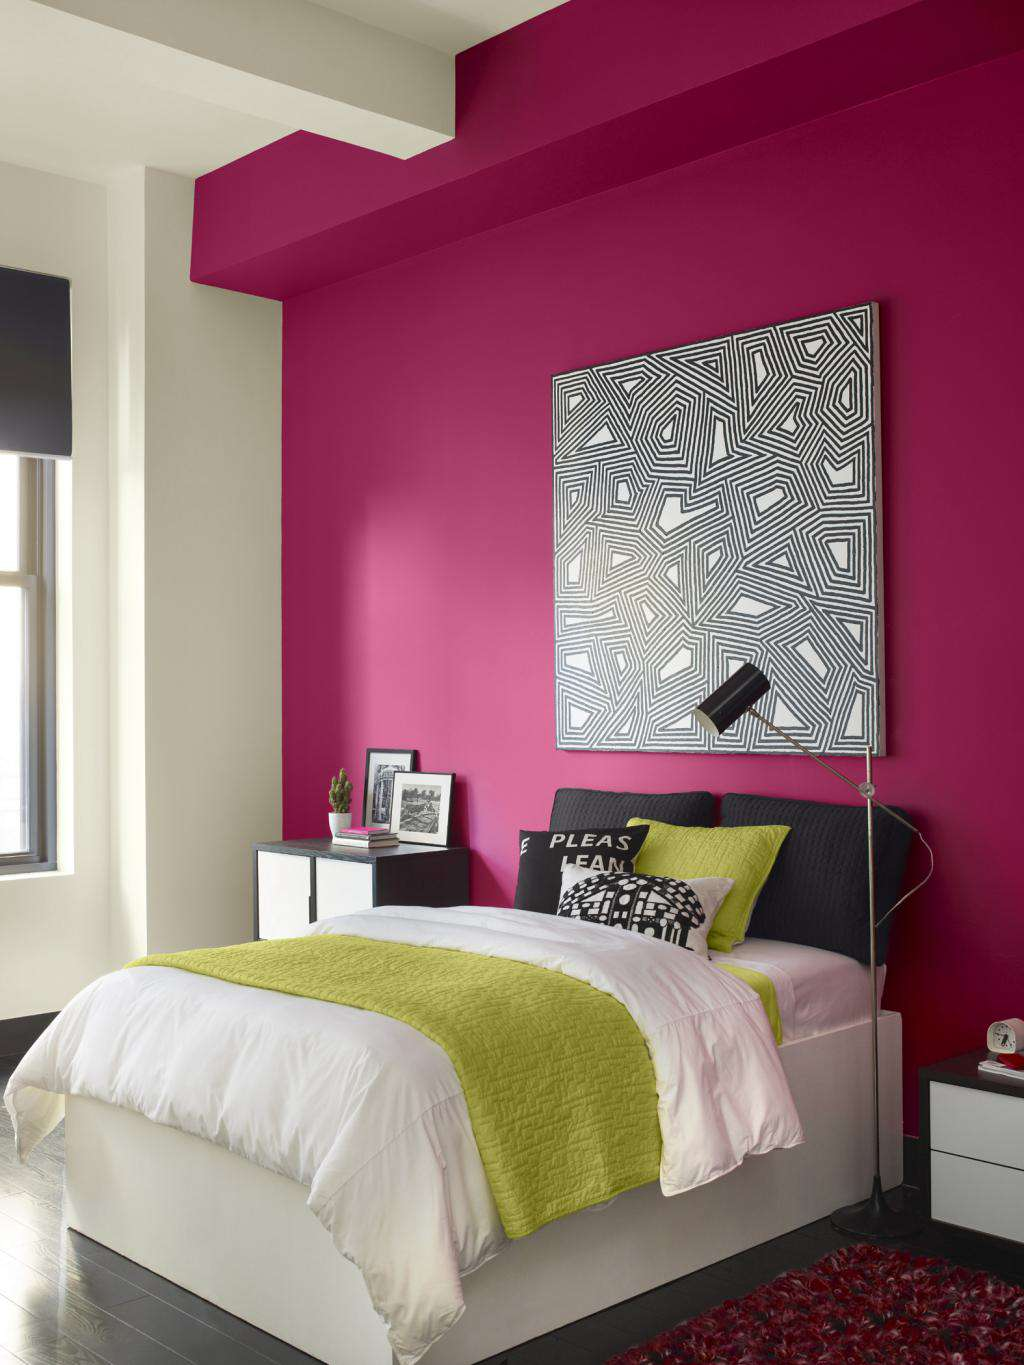 Magnificent Best Bination For Bedroom Of Beautiful Deep Pink Wall Paint White Wall Acnn Decor